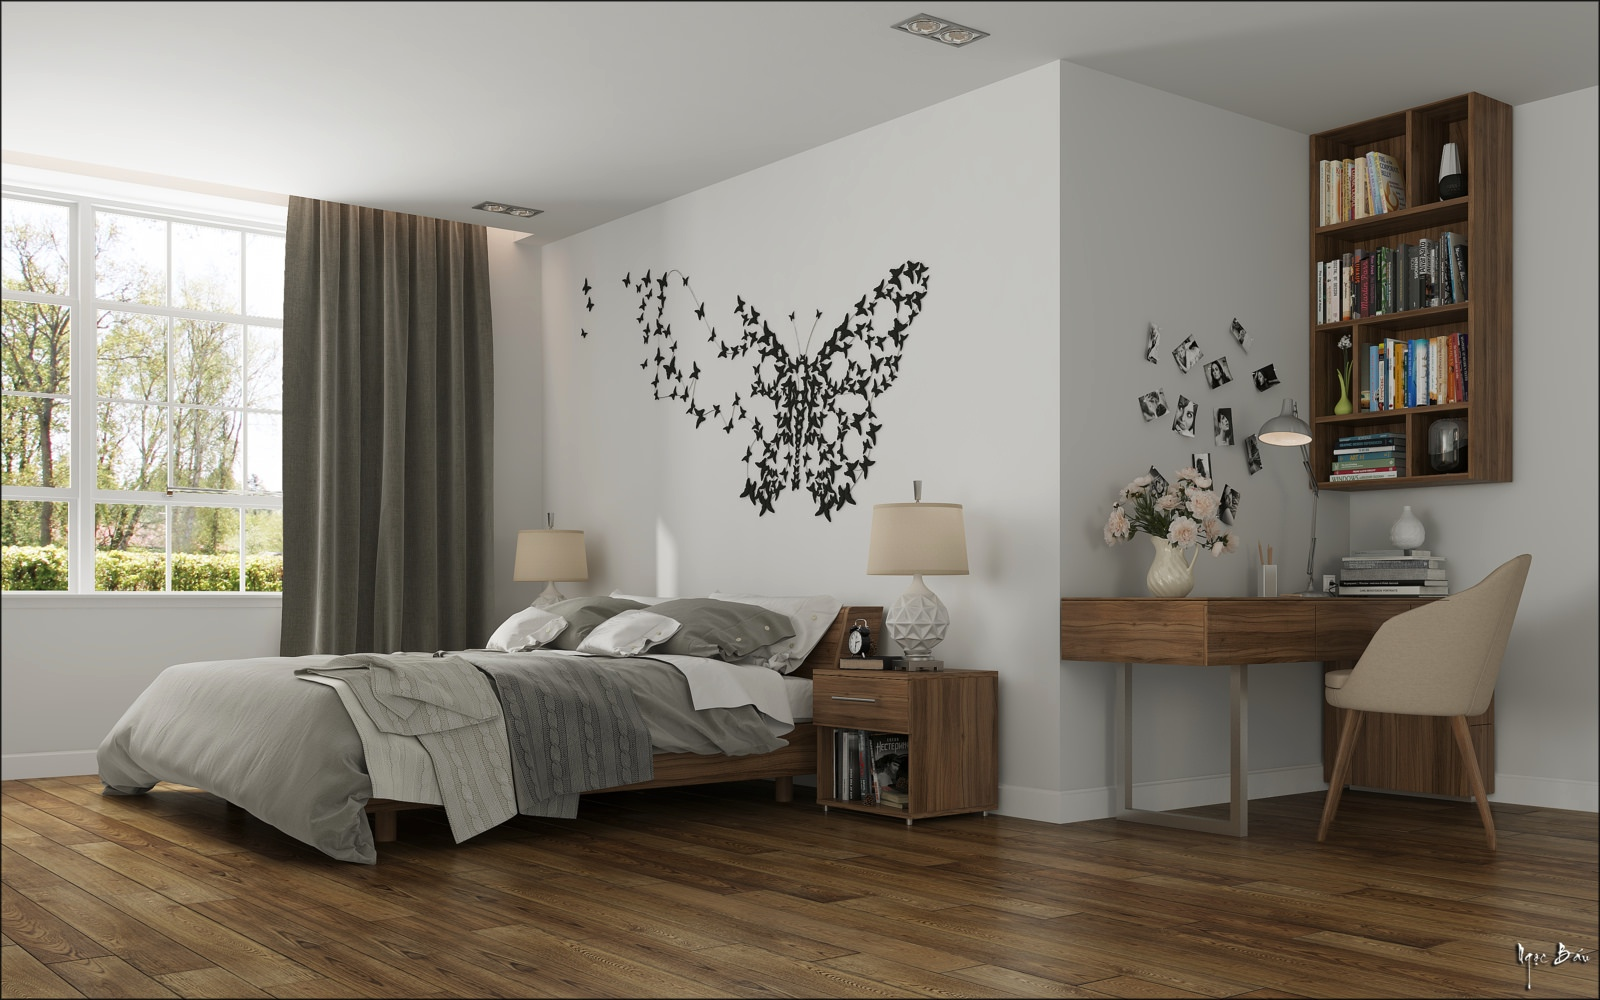 Bedroom butterfly wall art interior design ideas for Bedroom wall images